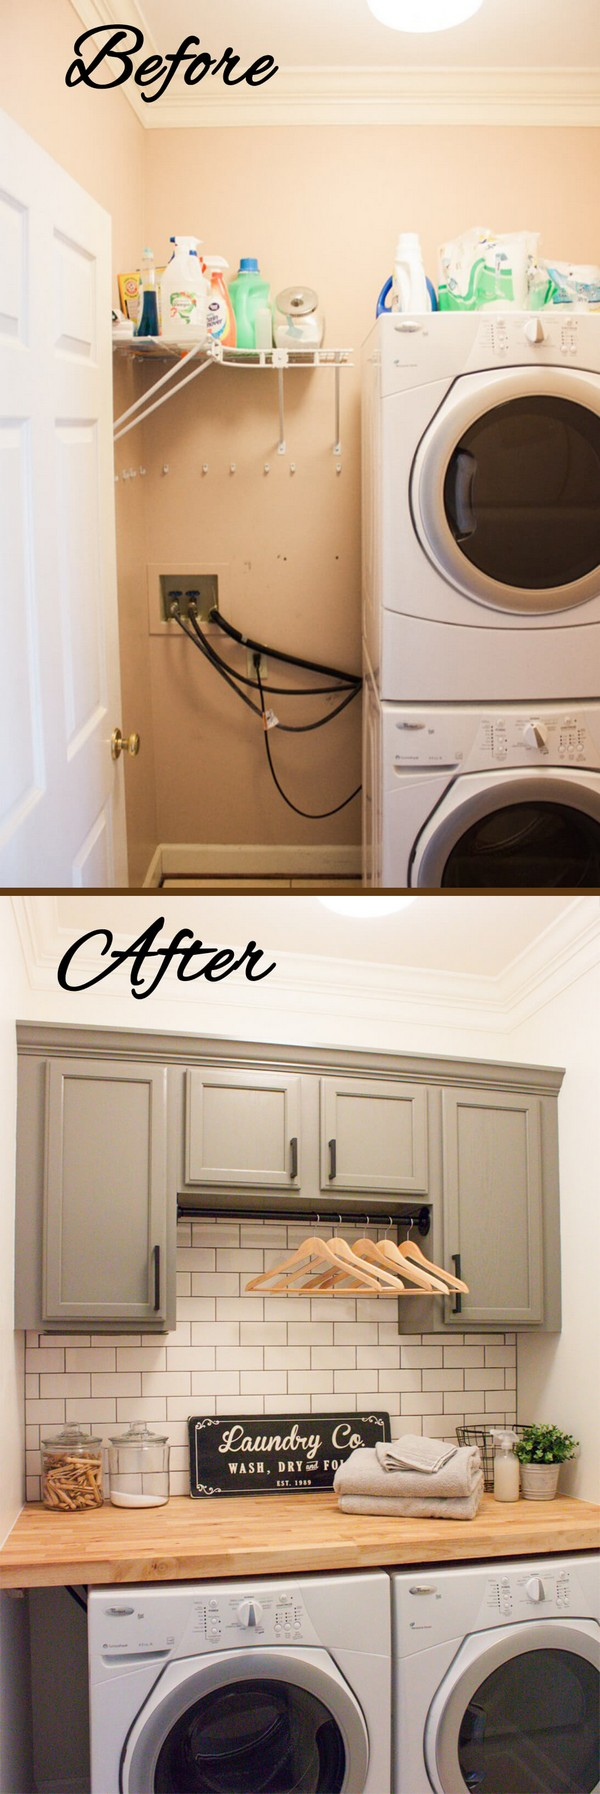 17 Before And After Budget Friendly Laundry Room Makeover Ideas